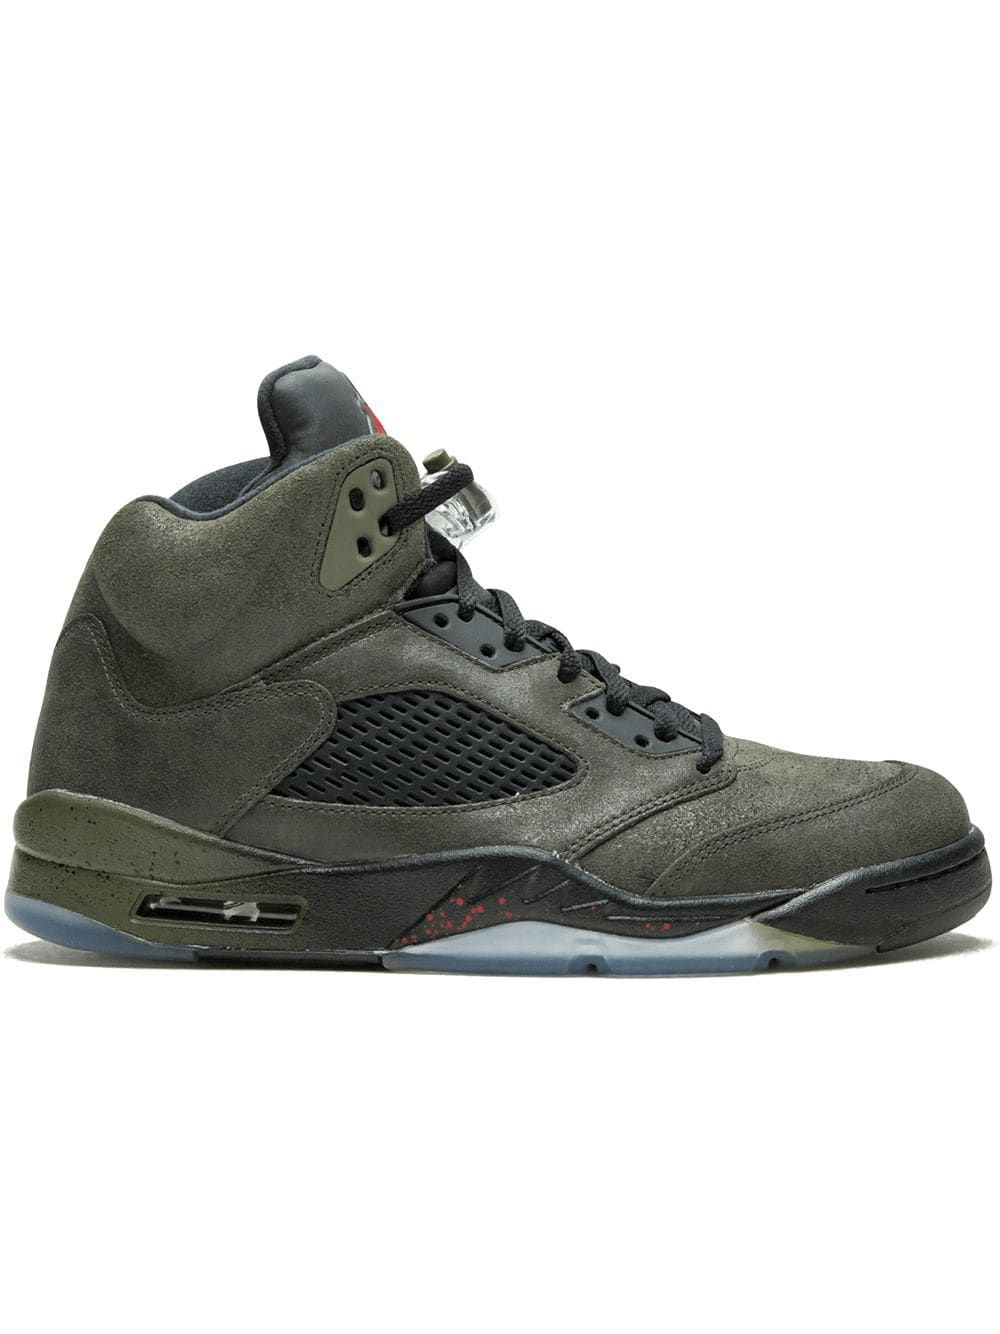 sale retailer 92170 ef3bf Air Jordan x PSNY 12 Retro Olive Pre Order ( 900) ❤ liked on Polyvore  featuring shoes, sneakers, retro shoes, retro style shoes, olive green sh…